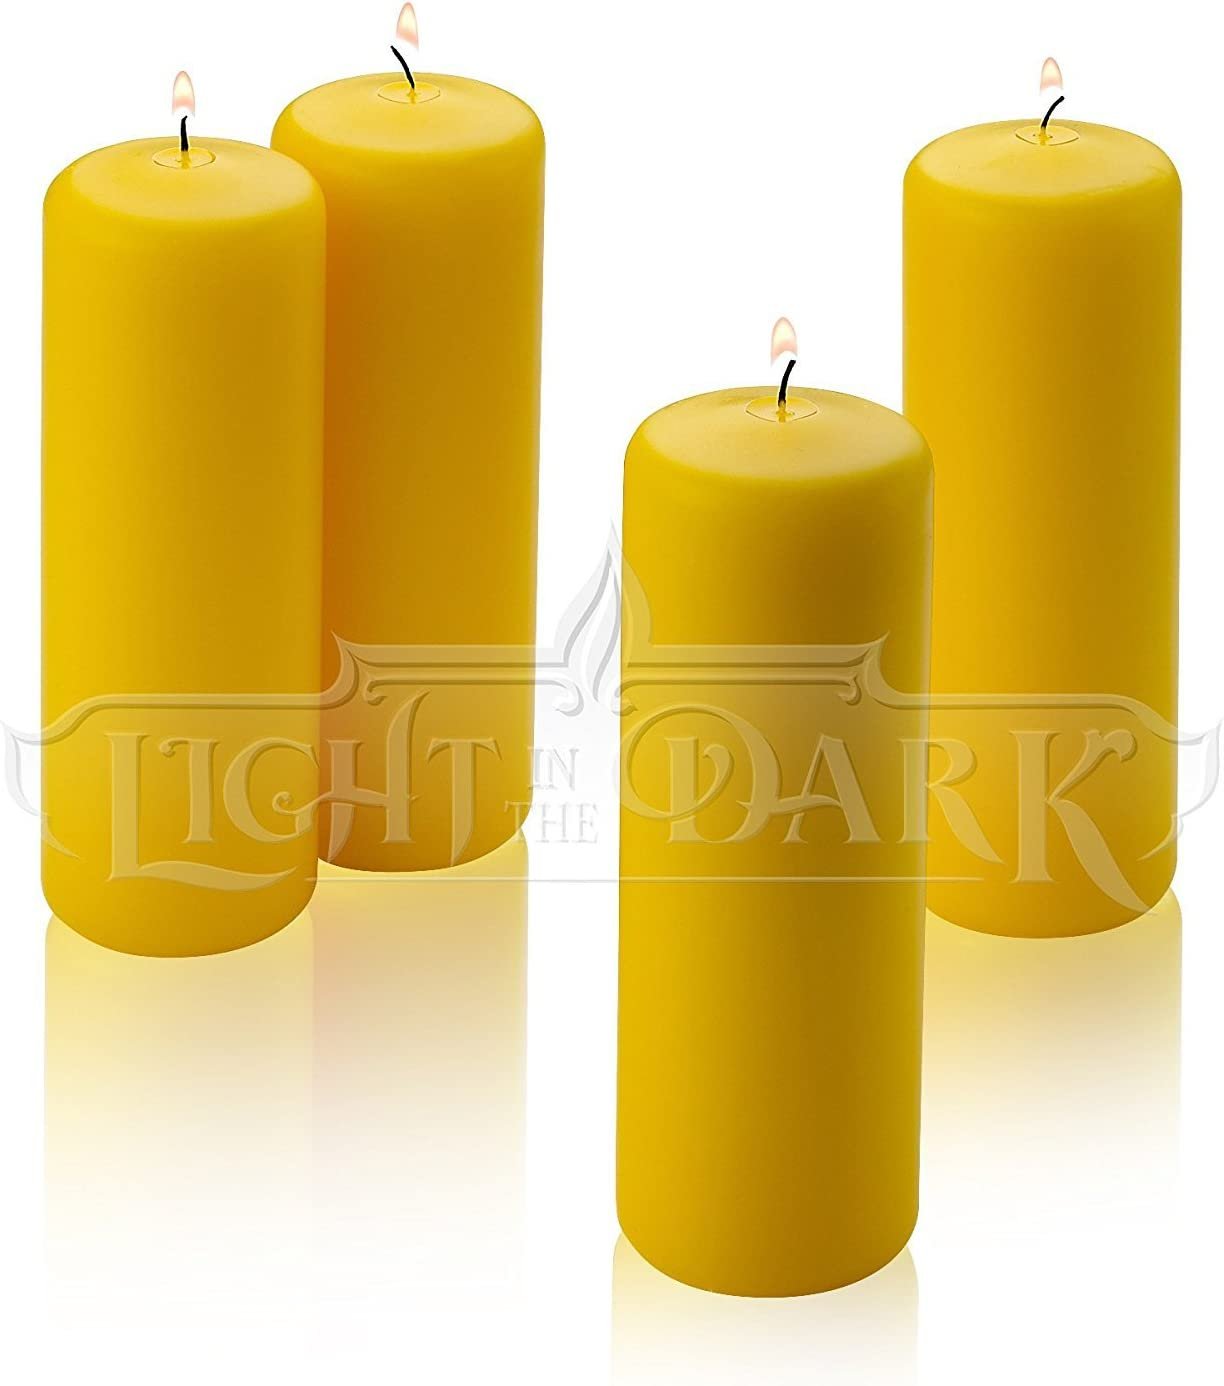 2 inch Thick Made in USA 6 inch Tall Citronella Pillar Candle 36 Hour Burn Time for Indoor//Outdoor Use Set of 4 Summer Scented Yellow Citronella Candles